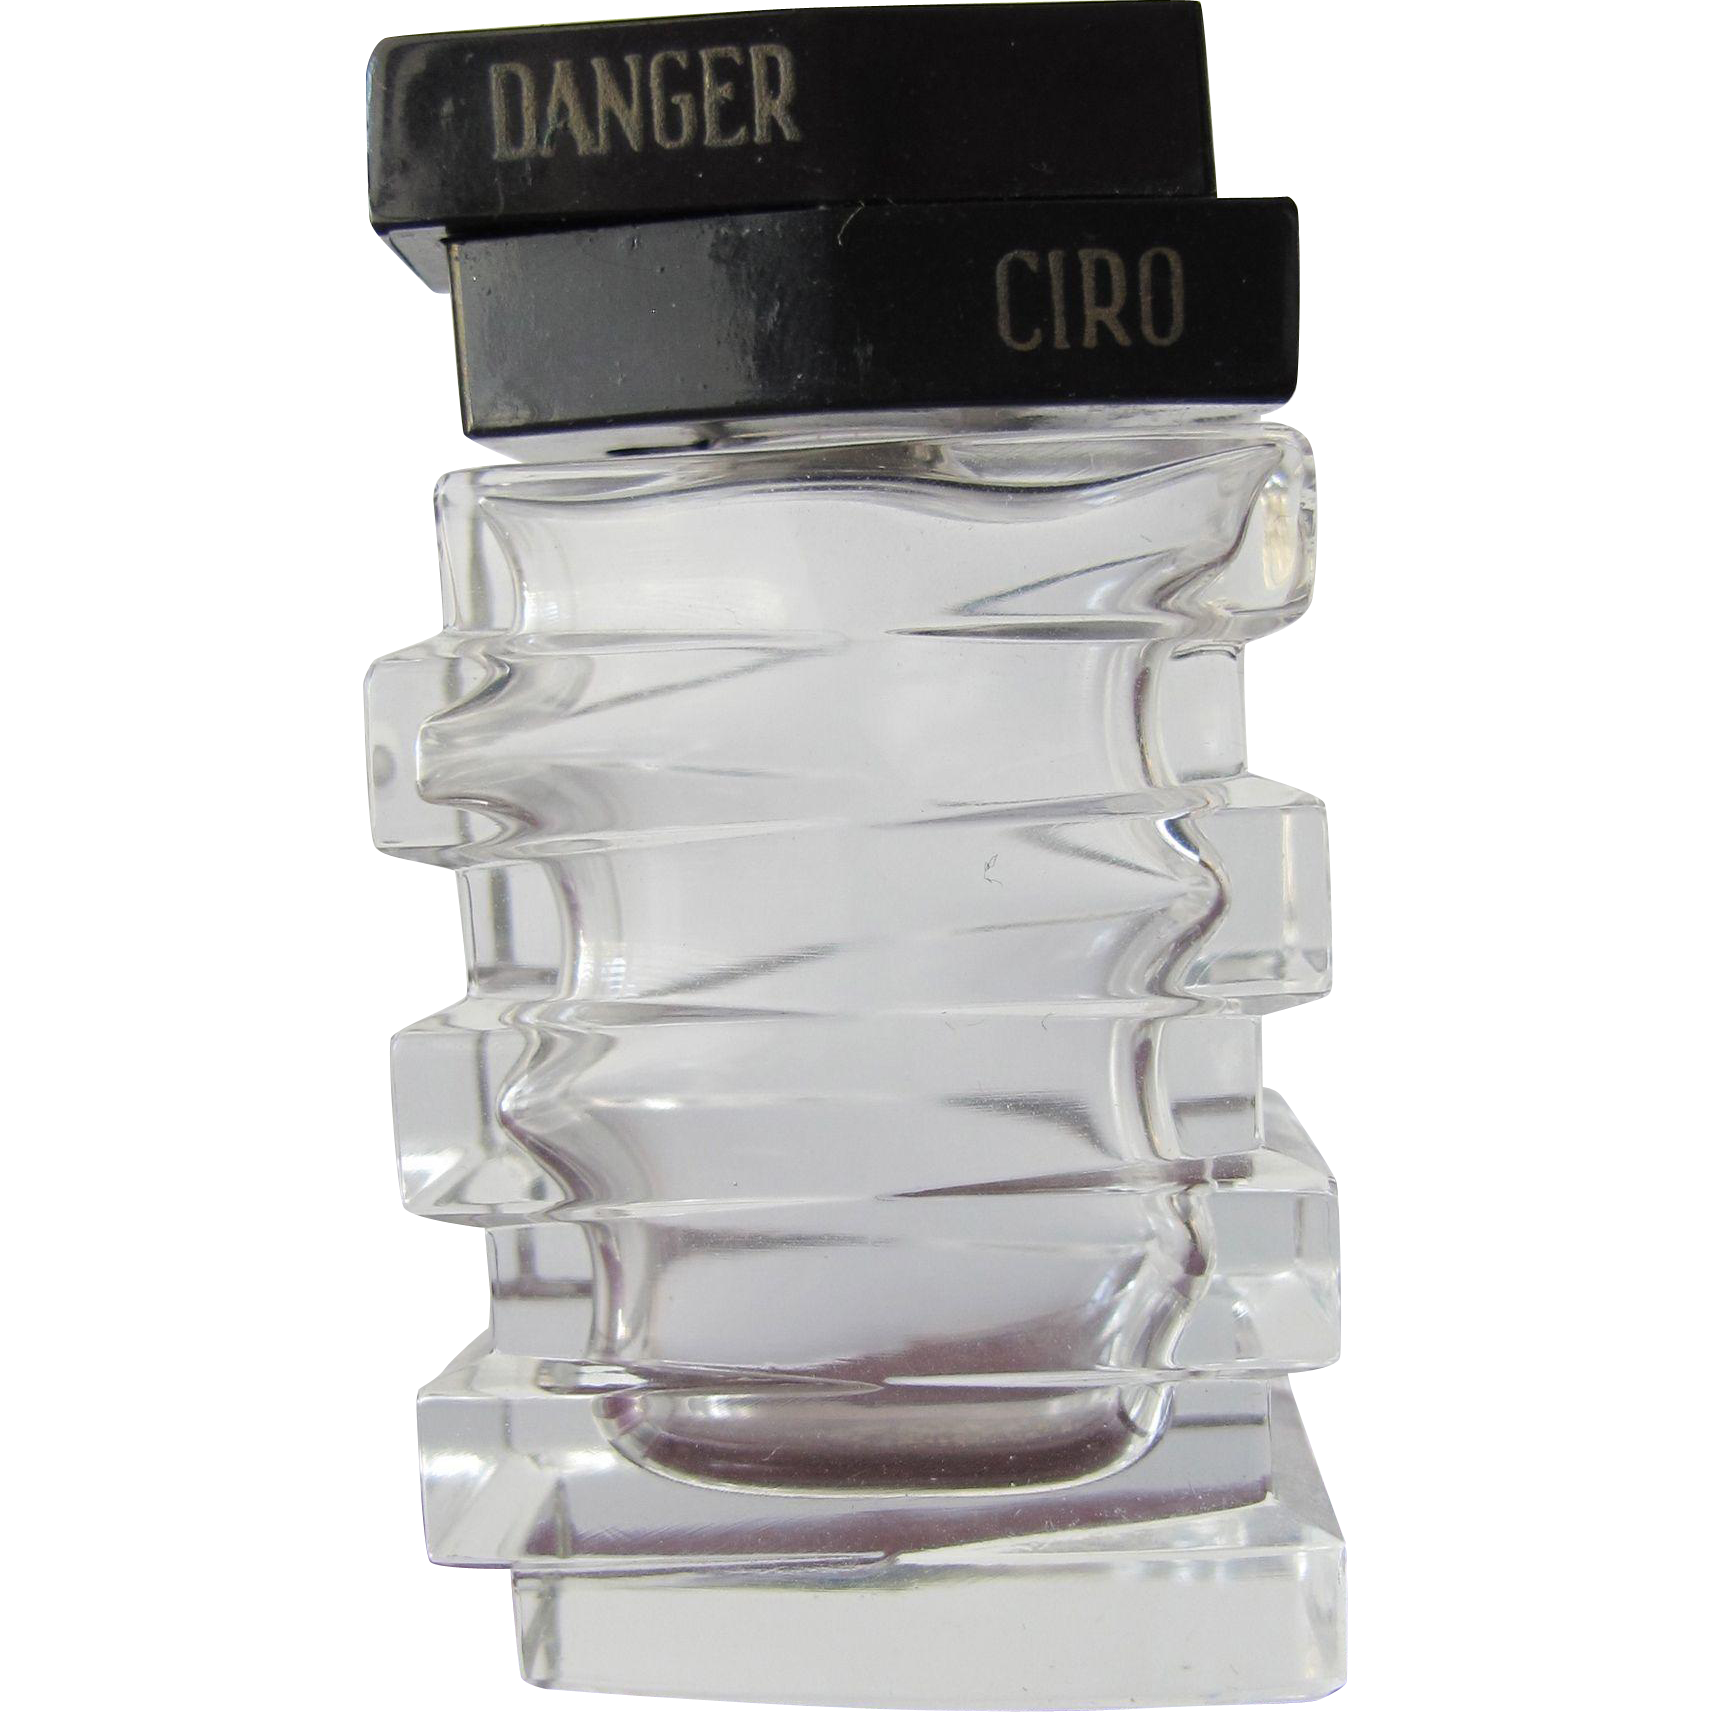 Commercial Perfume Bottle by Ciro Danger Perfume 1938 Smaller Size